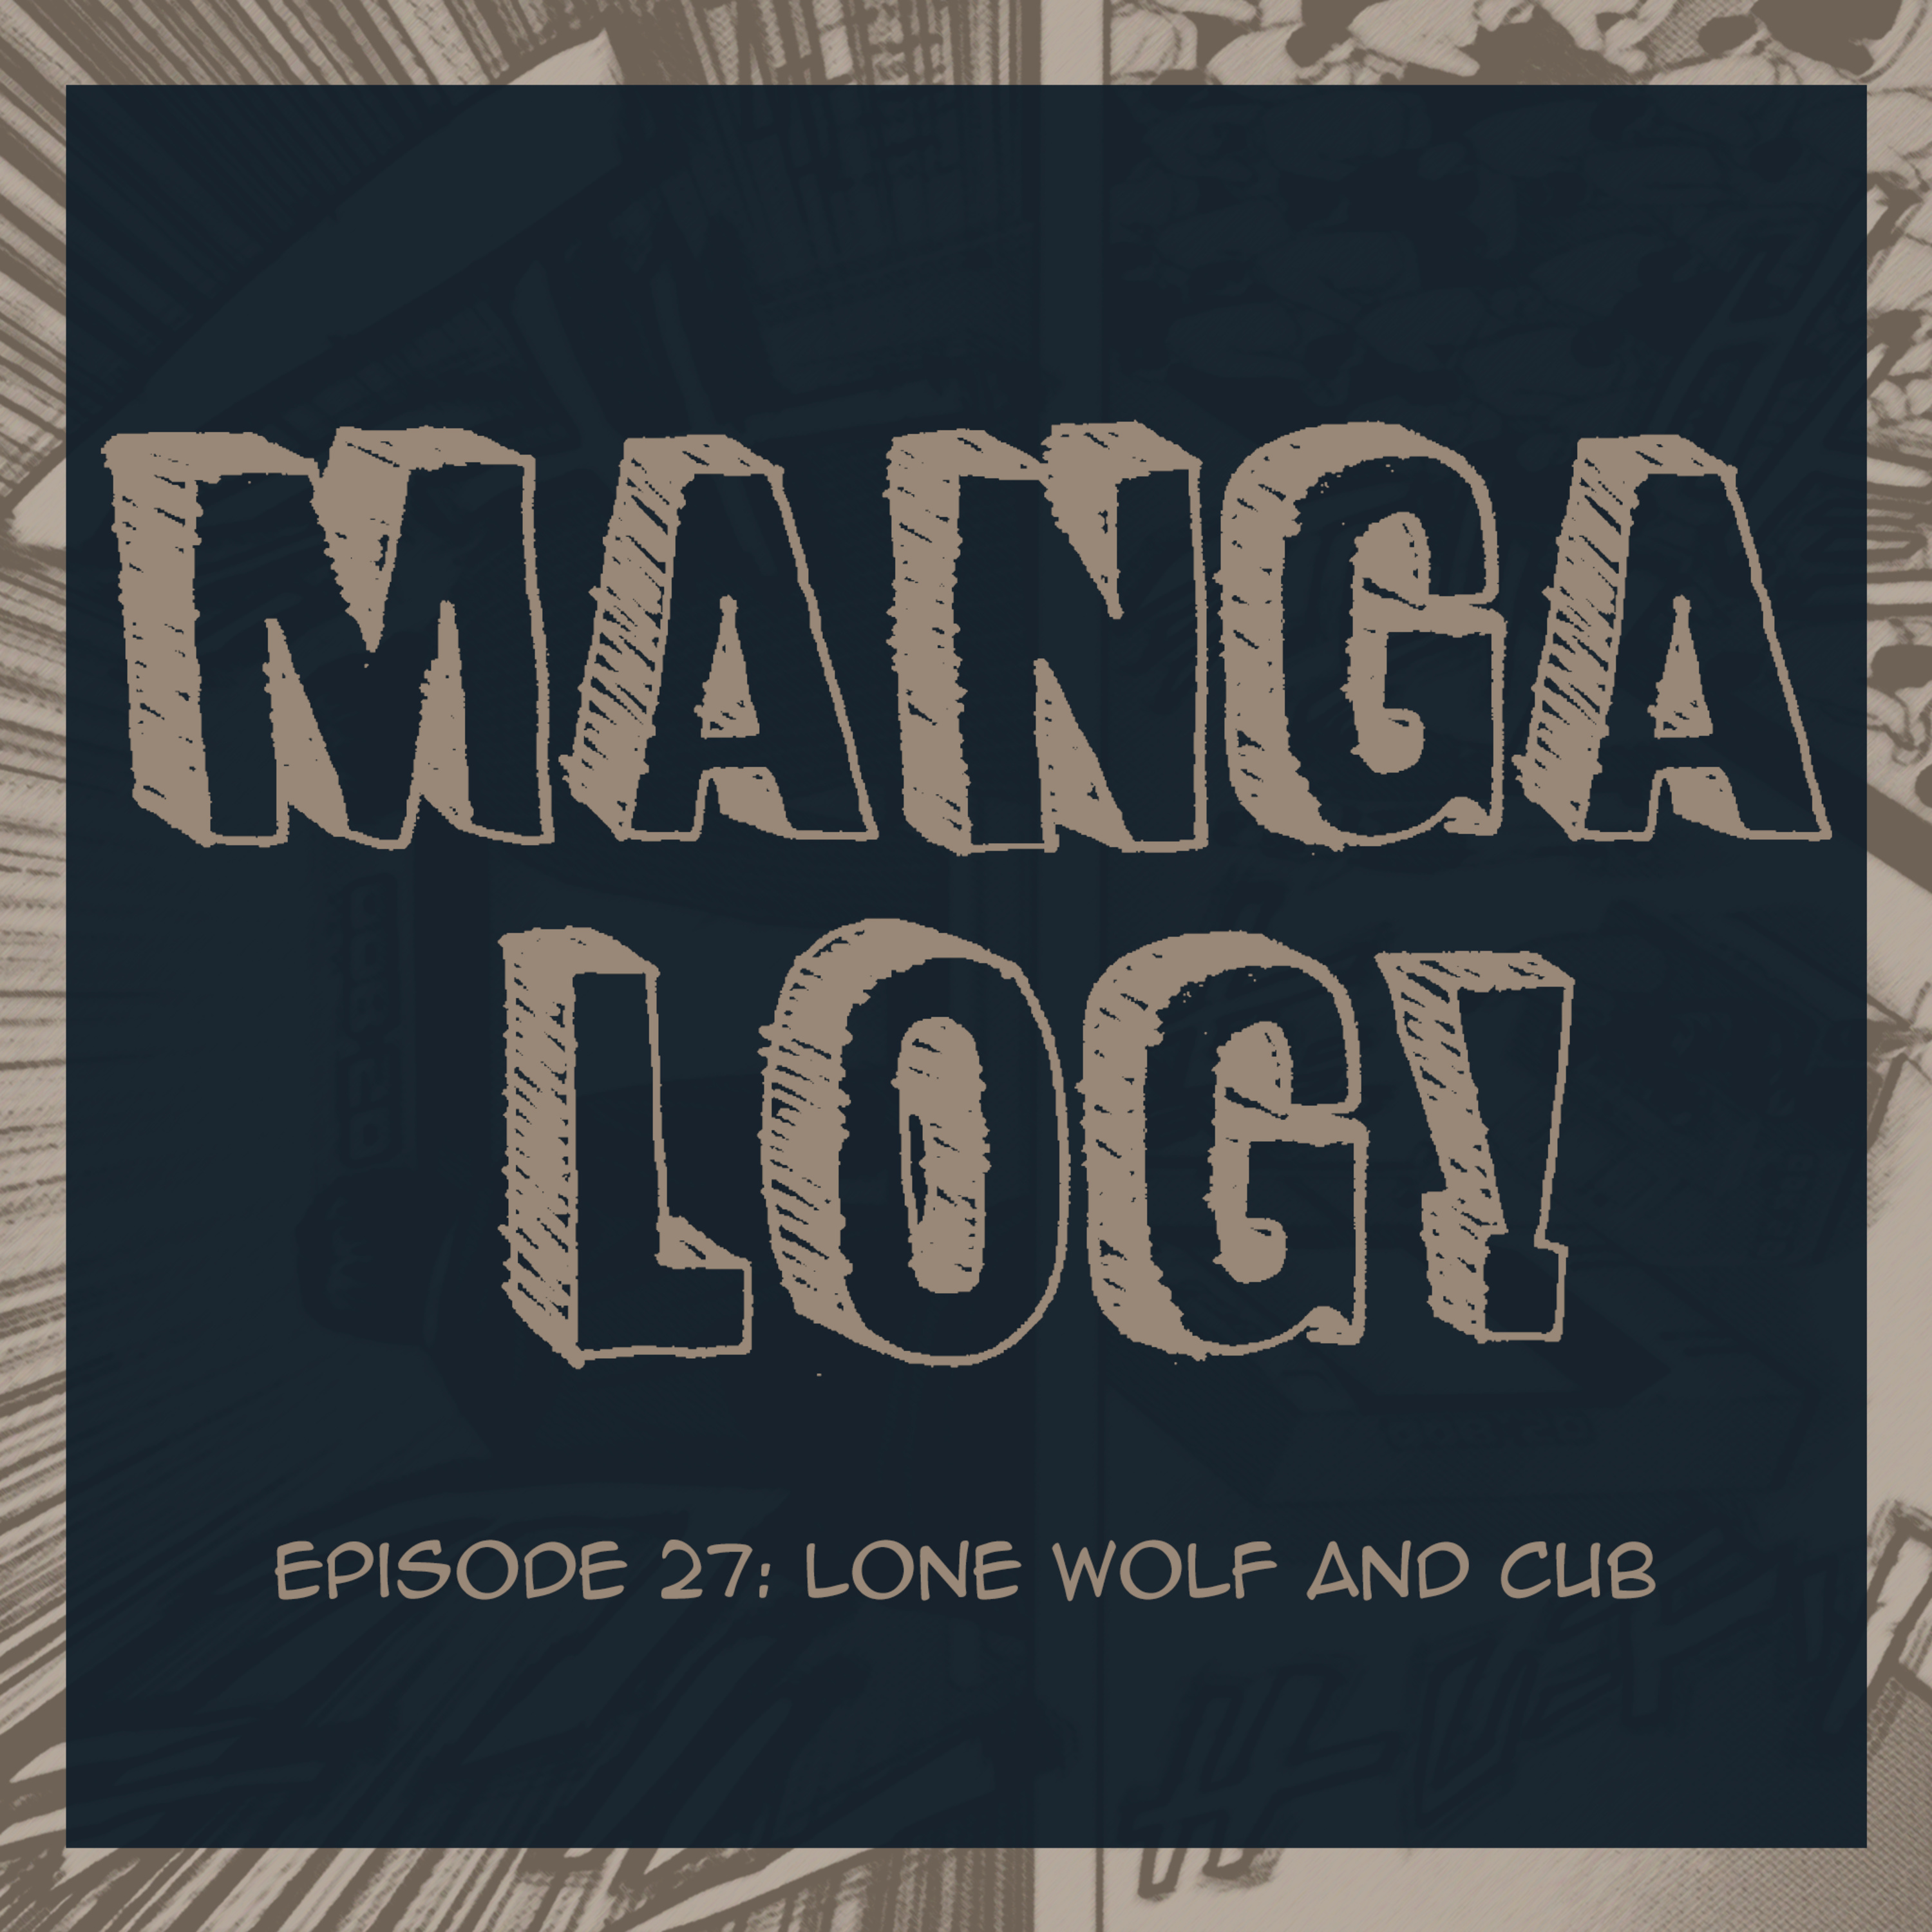 27: Lone Wolf and Cub